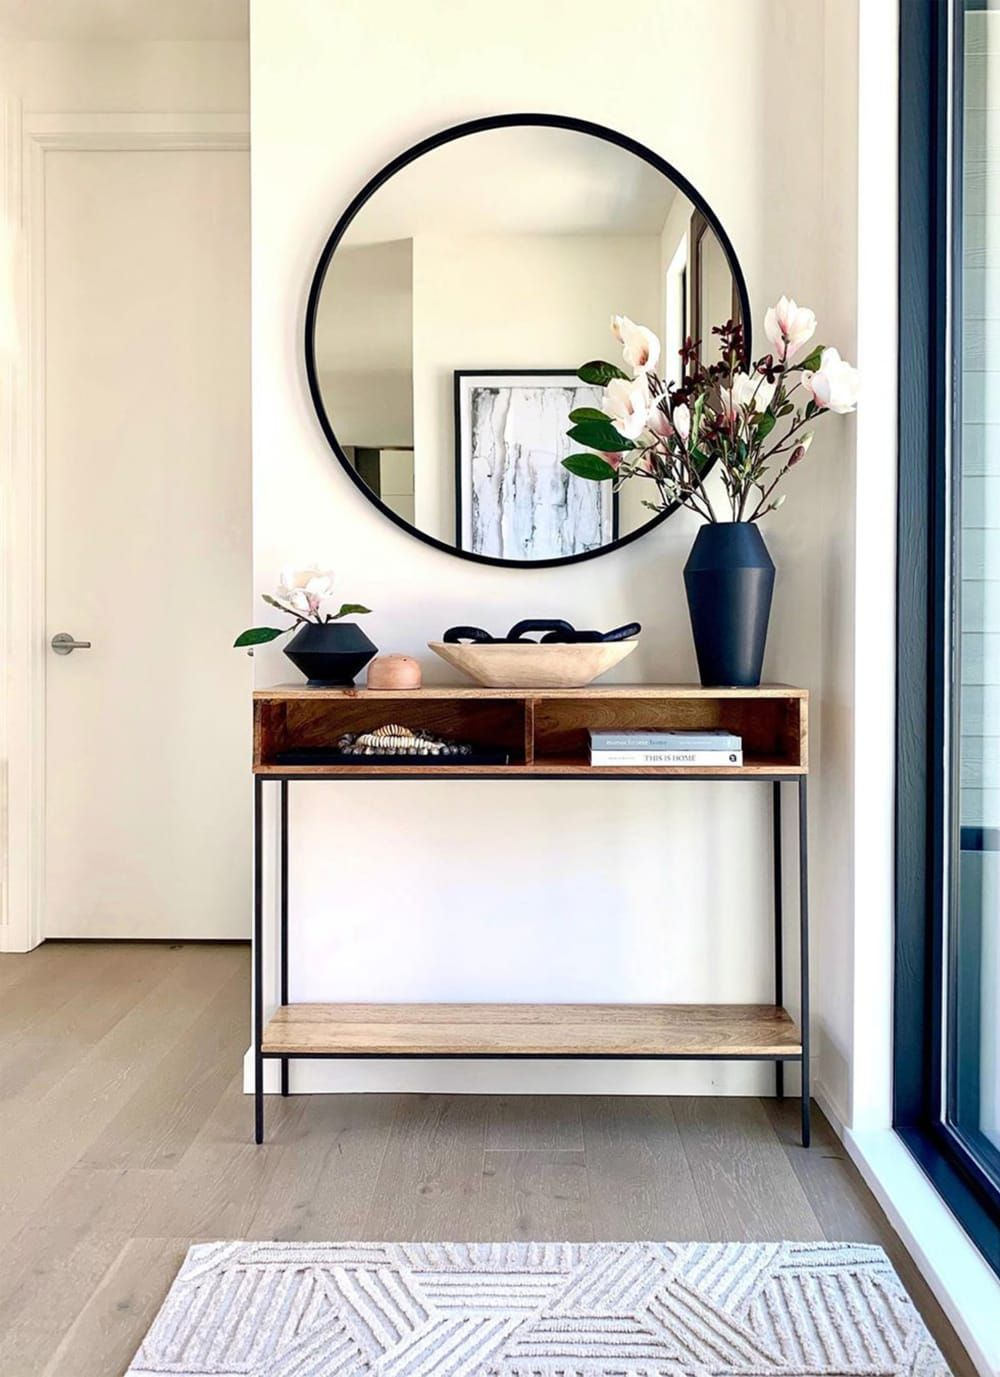 Biophilic & Sustainable Interior Design · Biophilic design room-by-room: the entryway